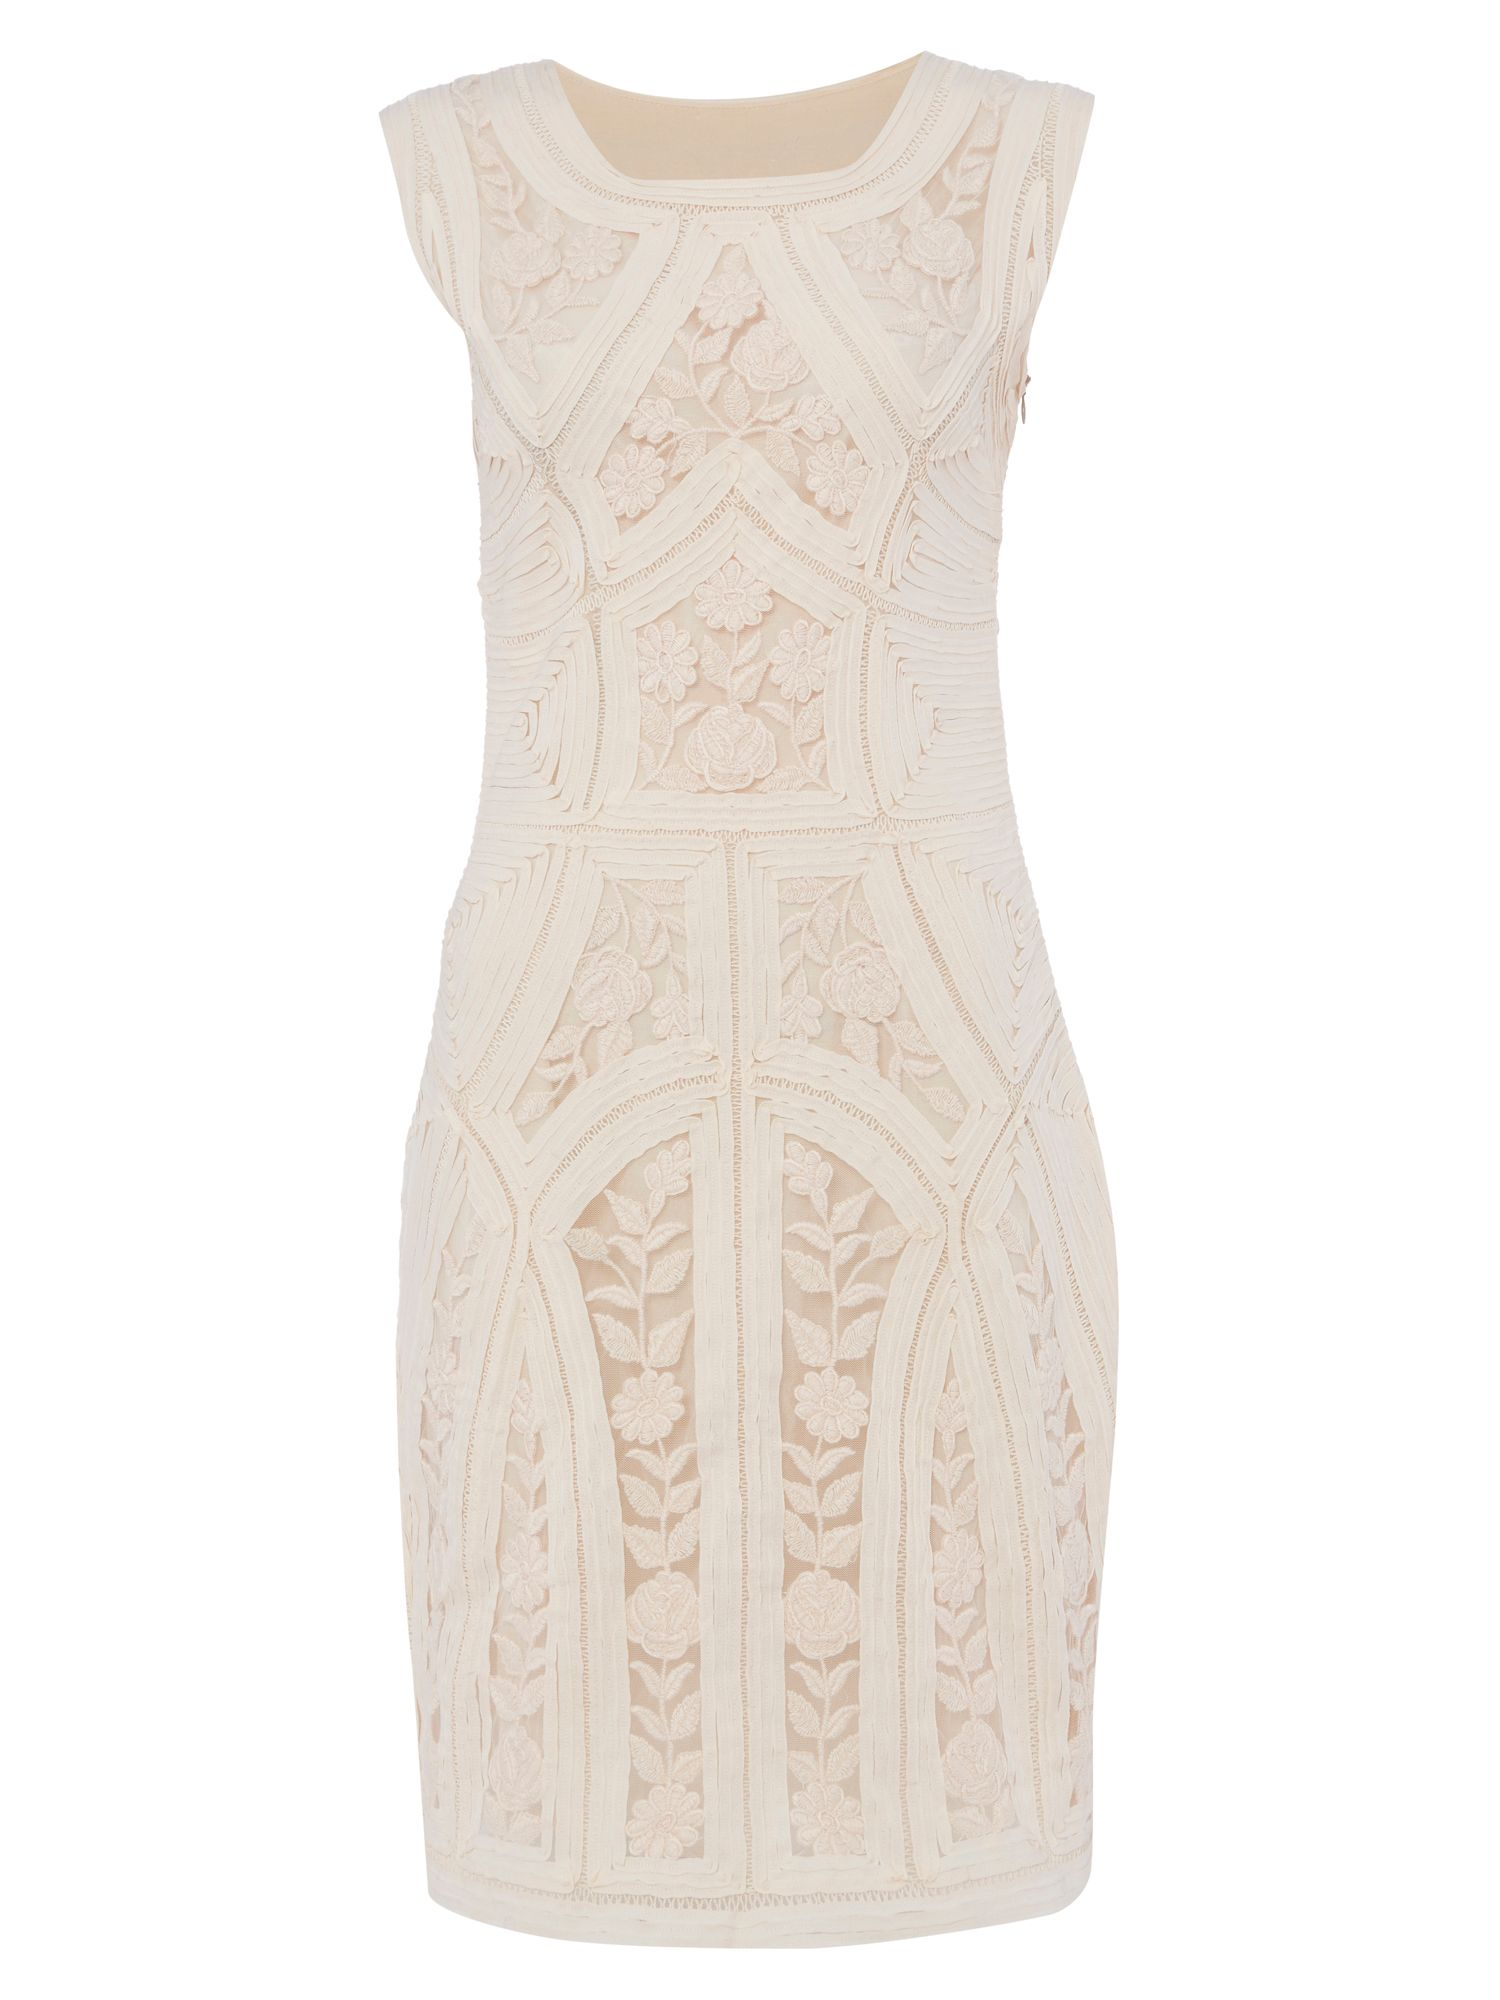 RAISHMA Lace Dress, Nude